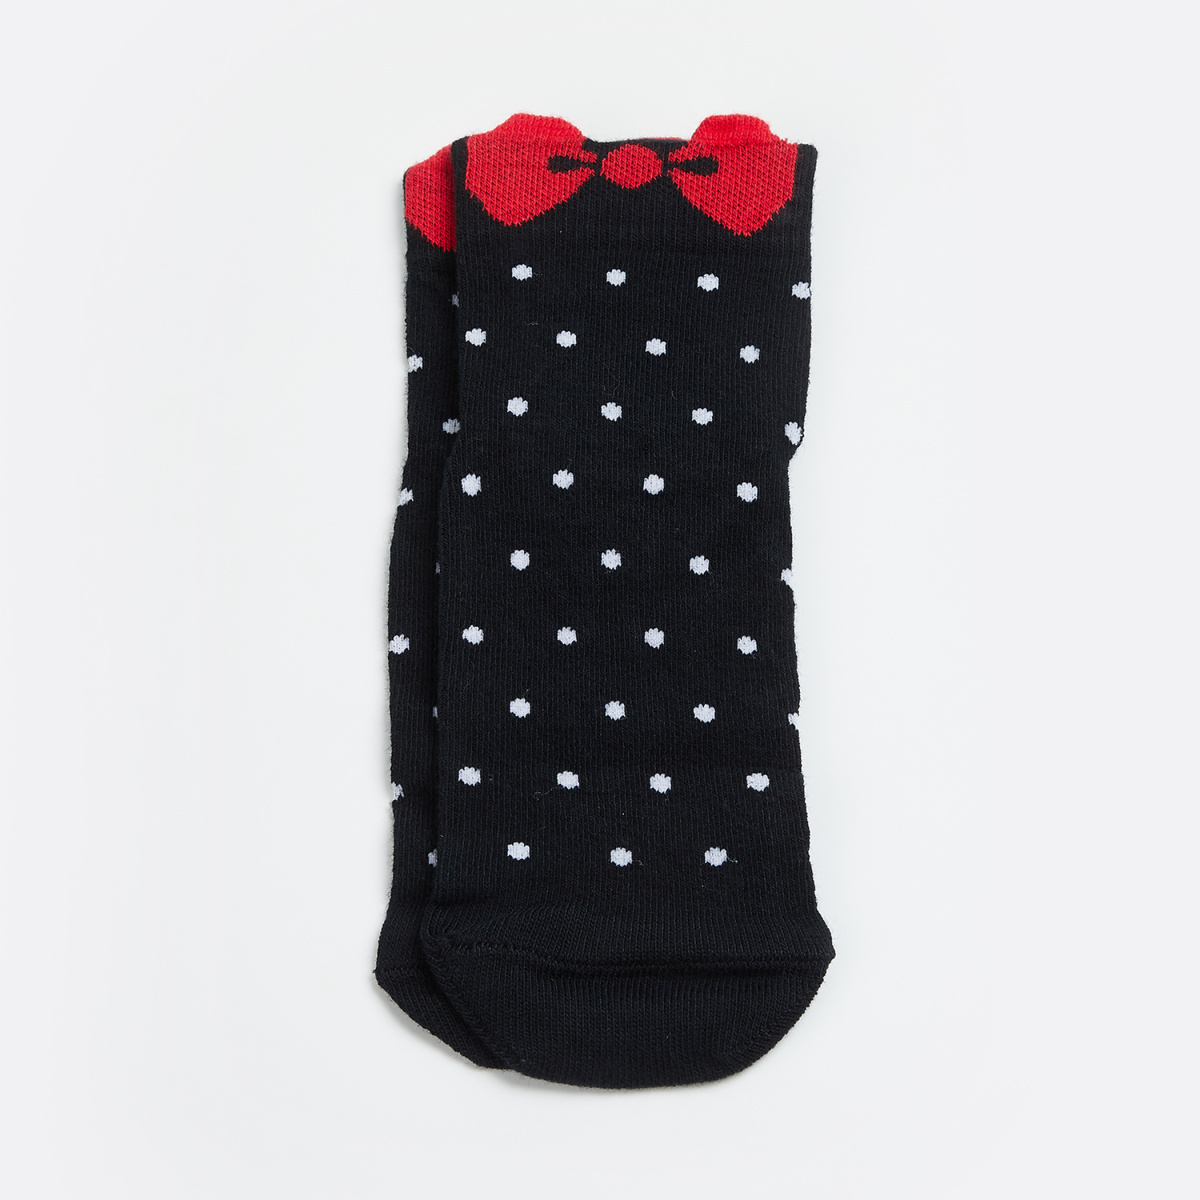 GINGER Women Patterned Knit Socks with Bow